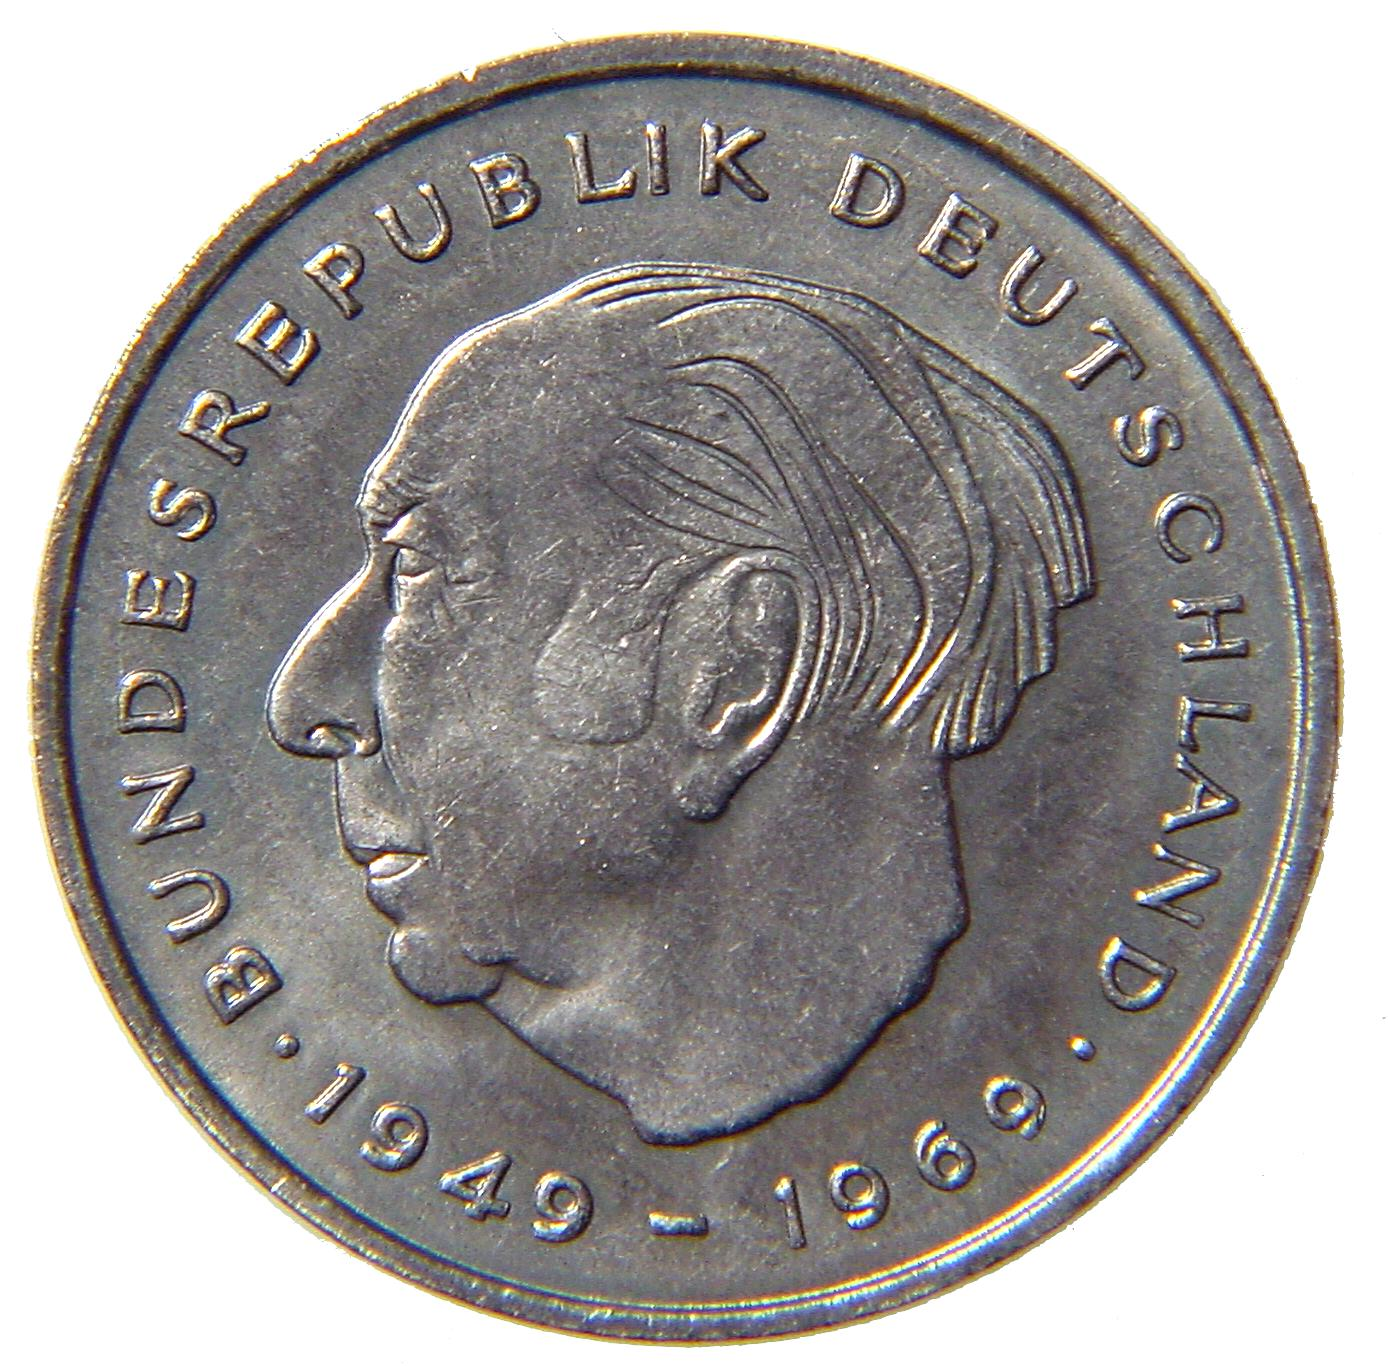 2-DM coin Heuss - obverse